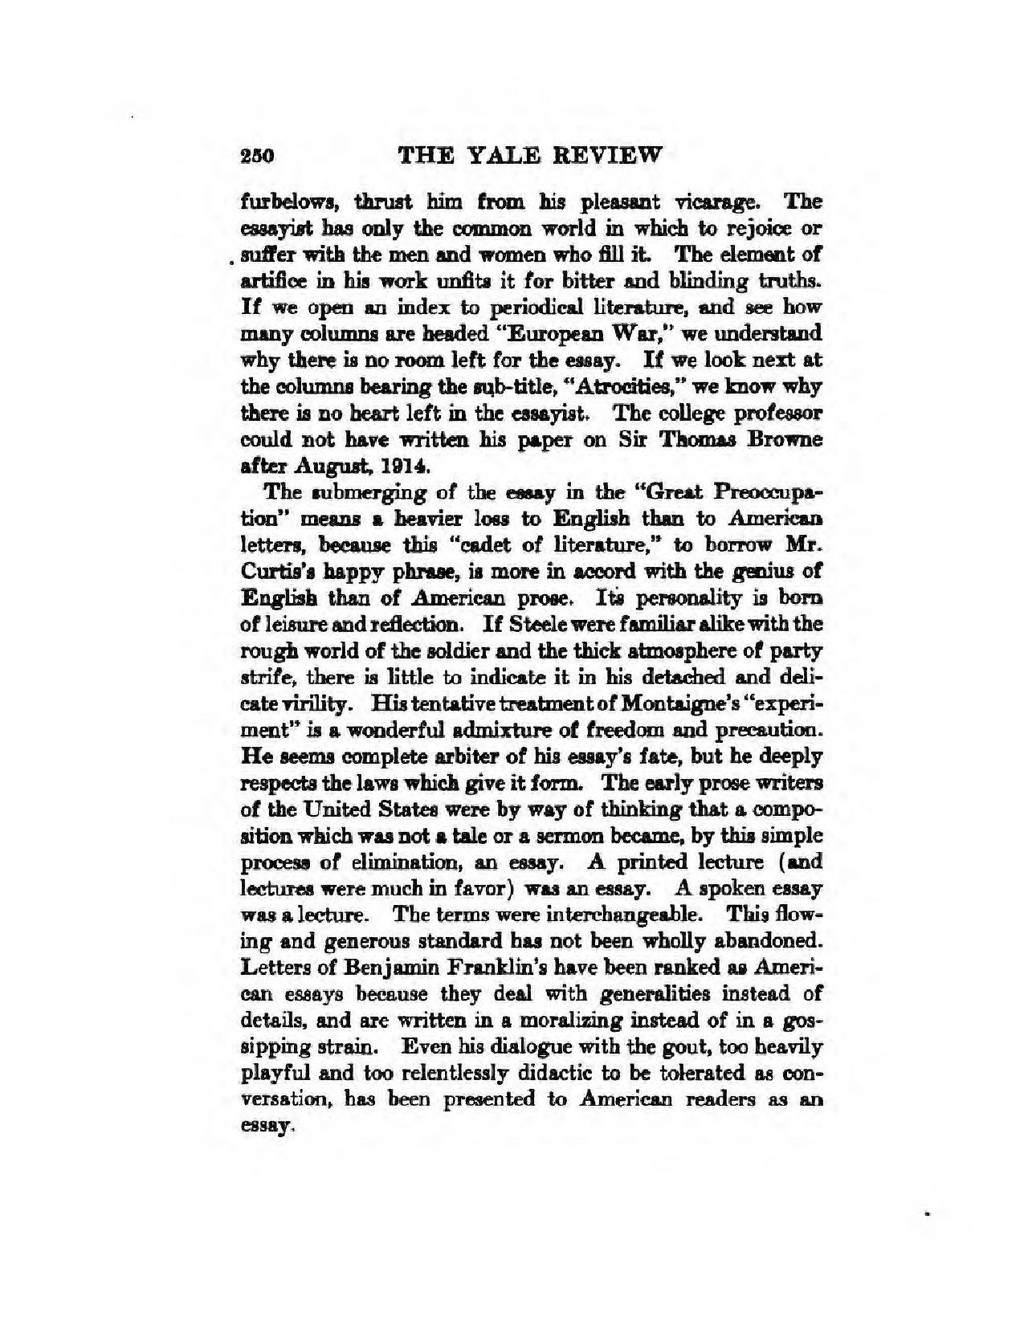 007 Essay Example What Is An American Page2 1024px The In War Time2c Agnes Repplier2c 1918 Stupendous Thesis Your Dream Ideas Large